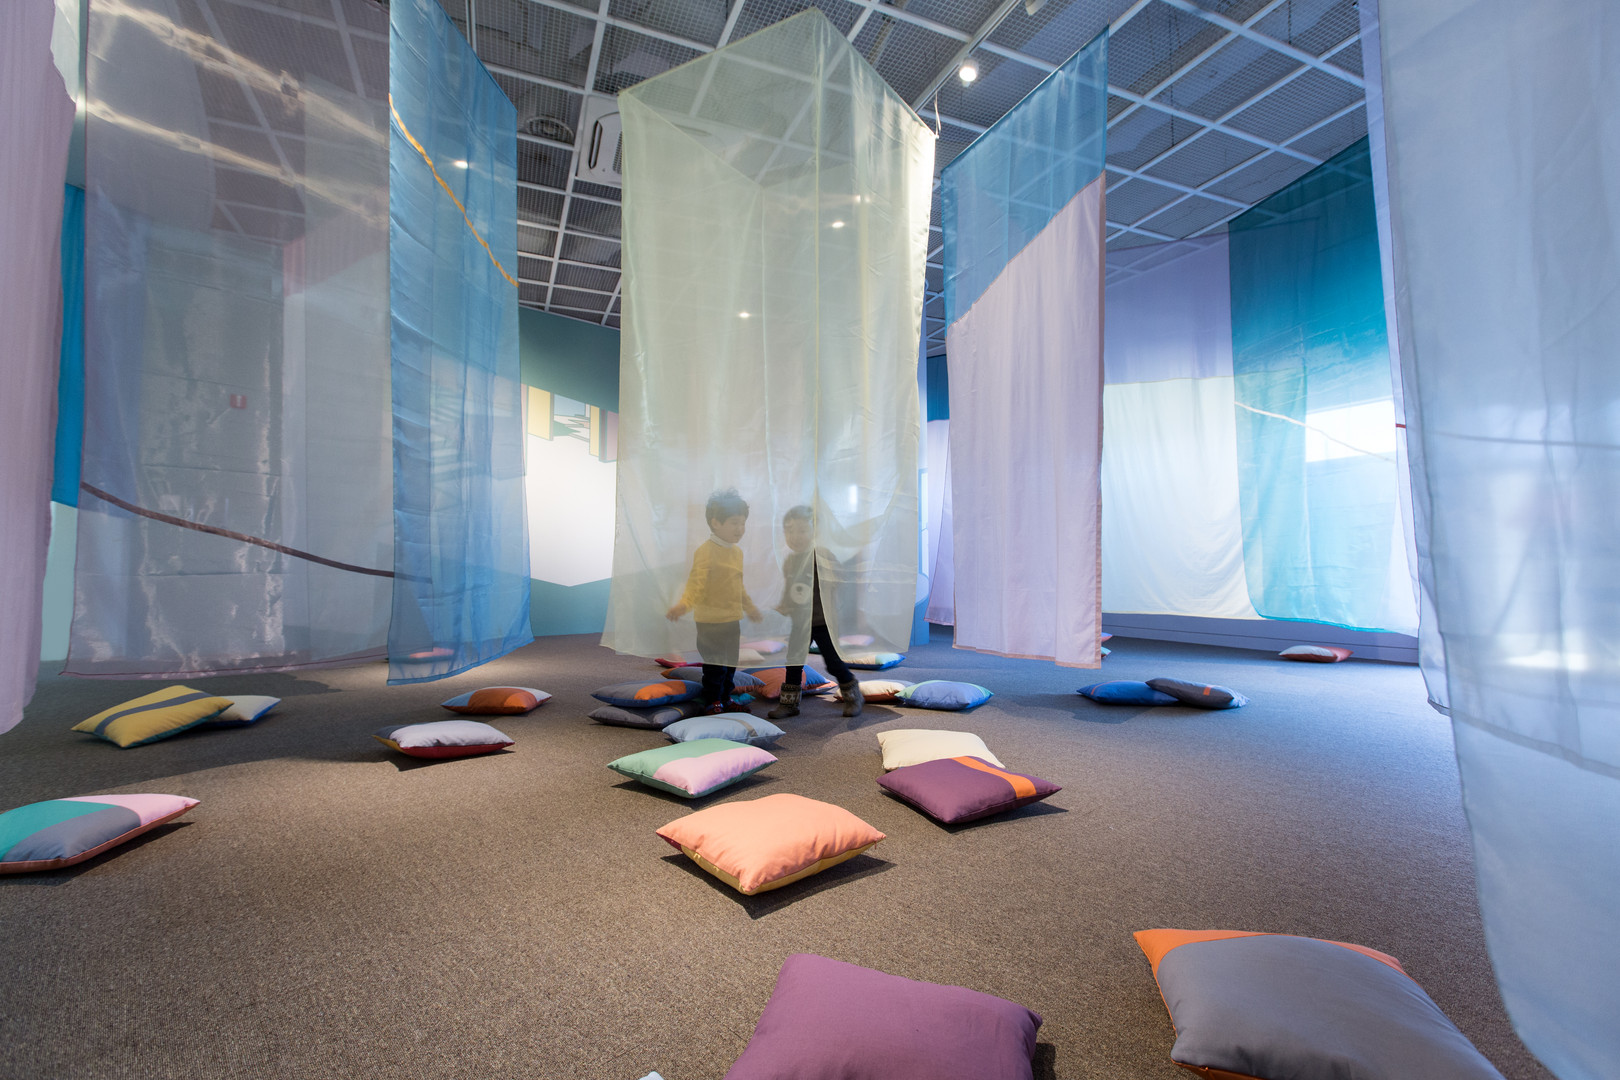 솔솔 색깔바람 (Color of the Wind), wall painting&fabric installation, variable installation, 2017, 어린이박물관 전시